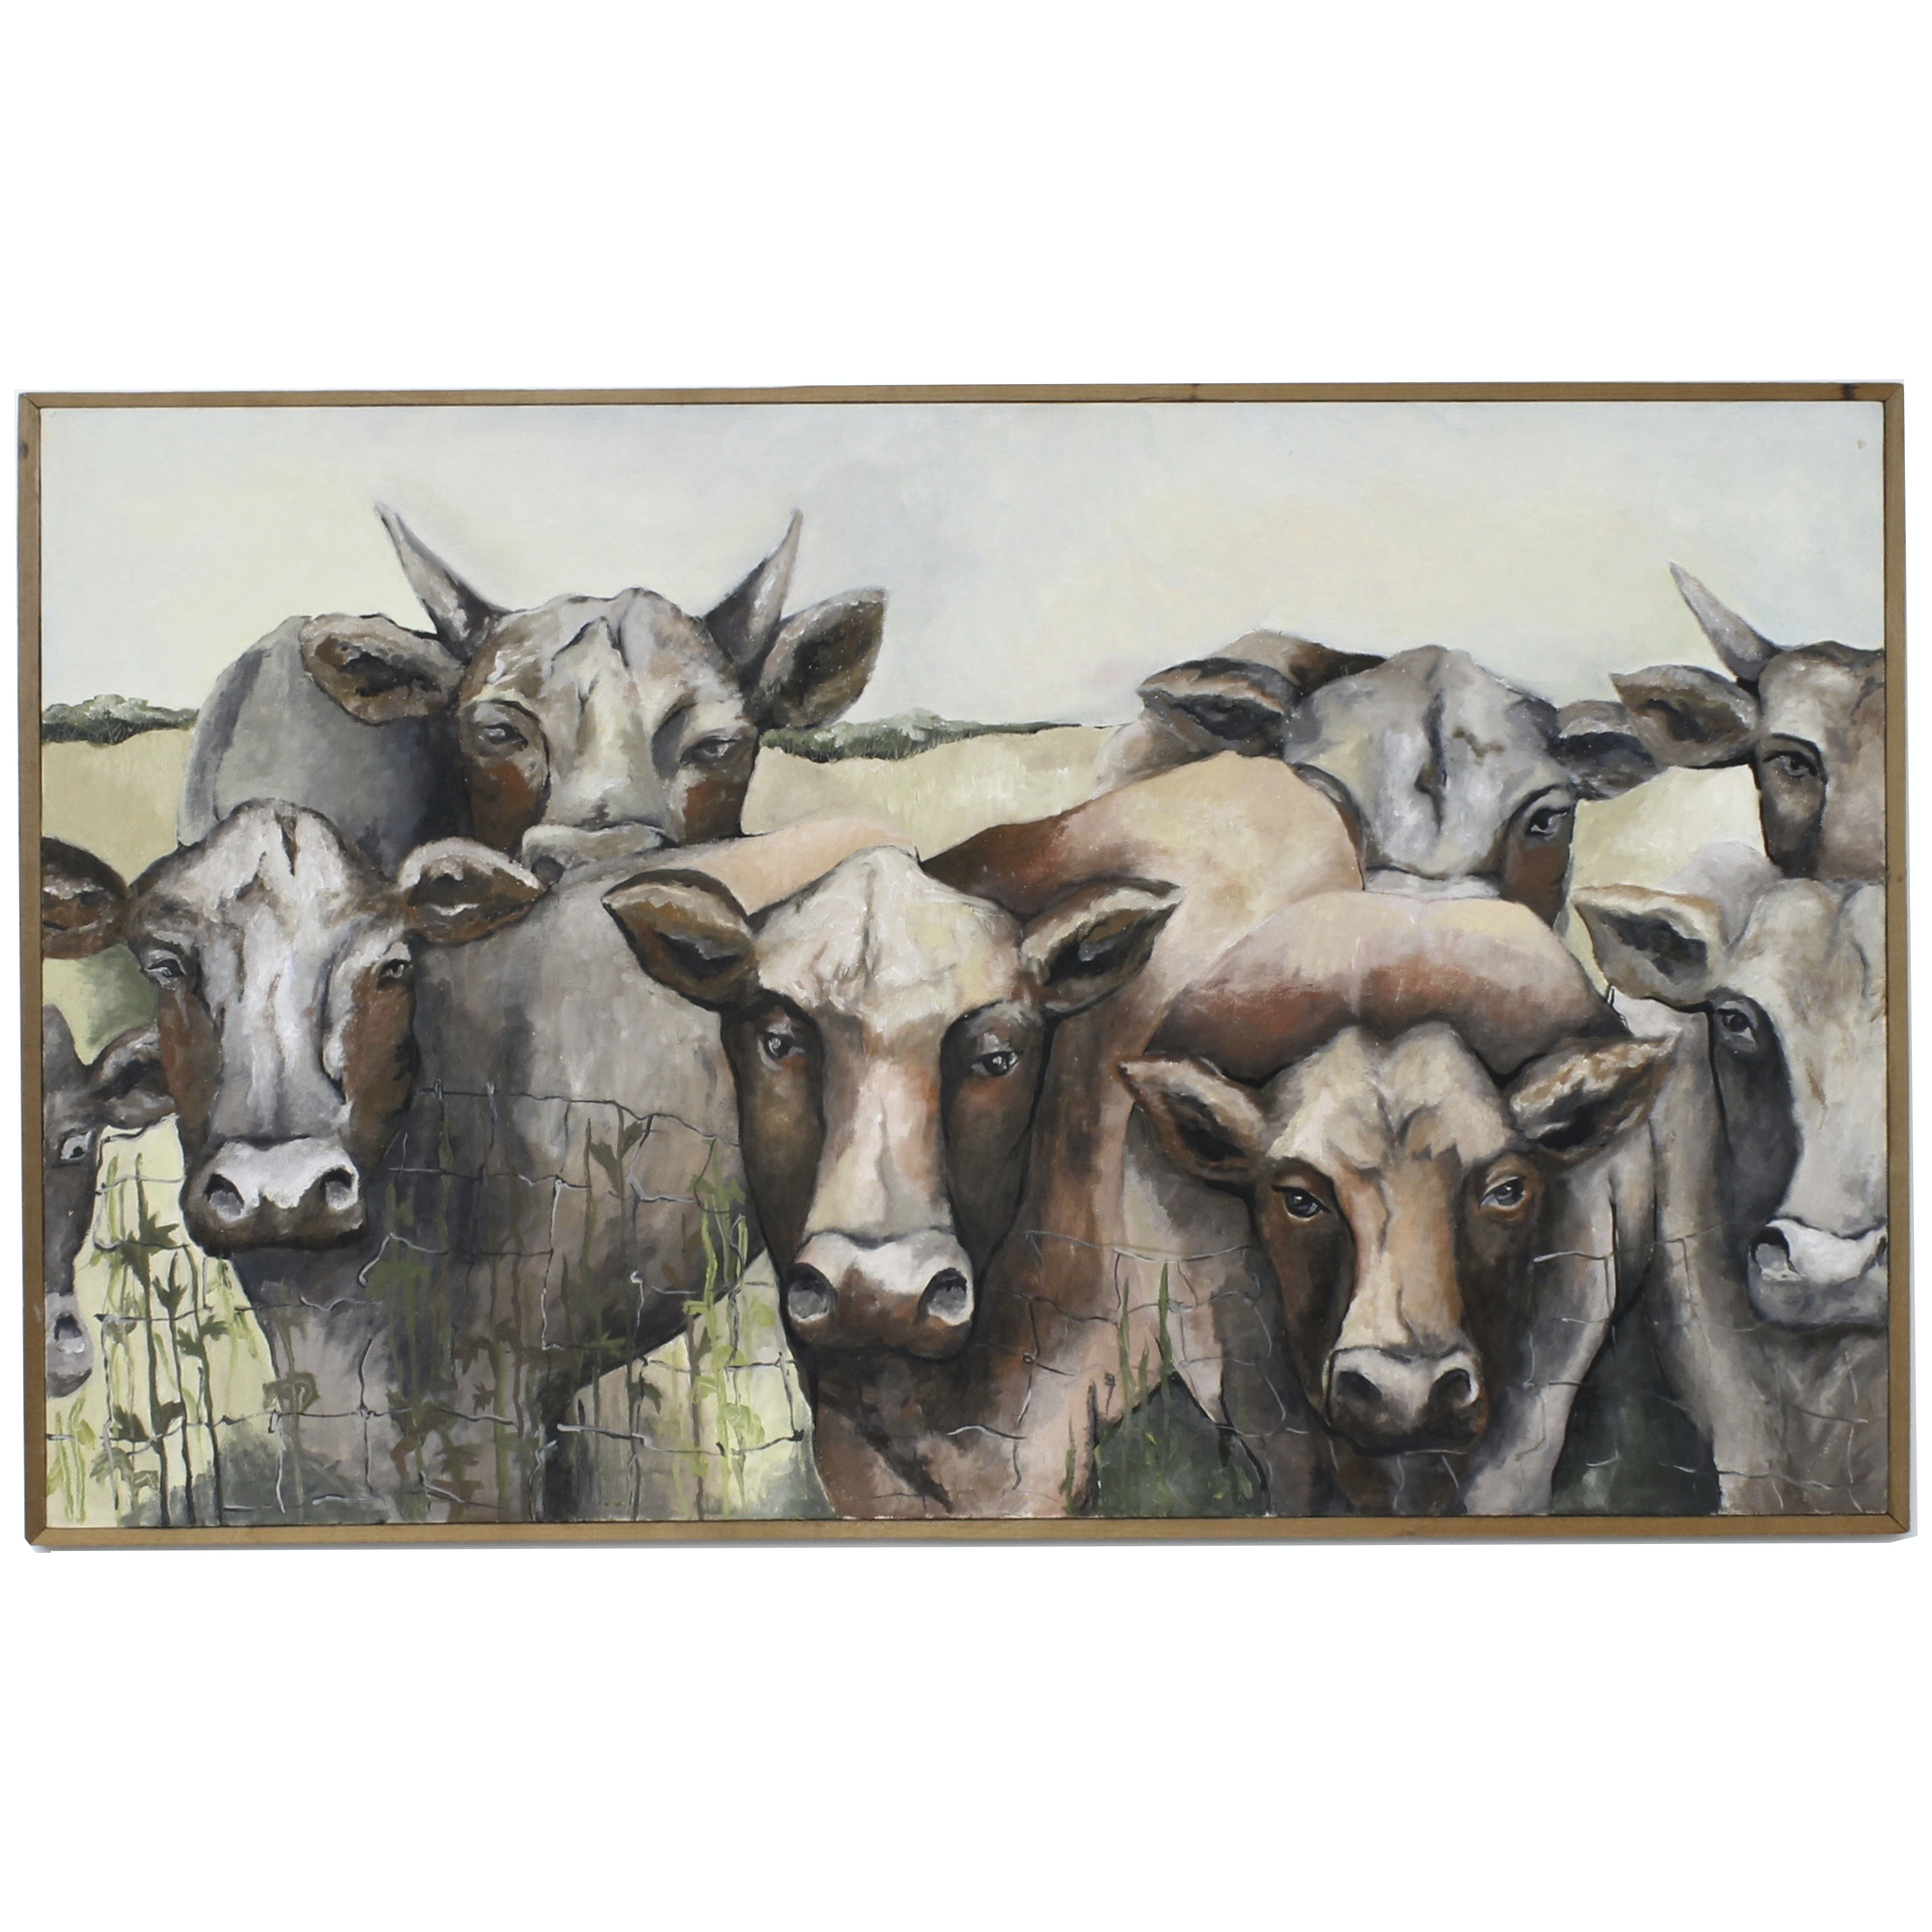 OIl on Canvas Painting of Cows